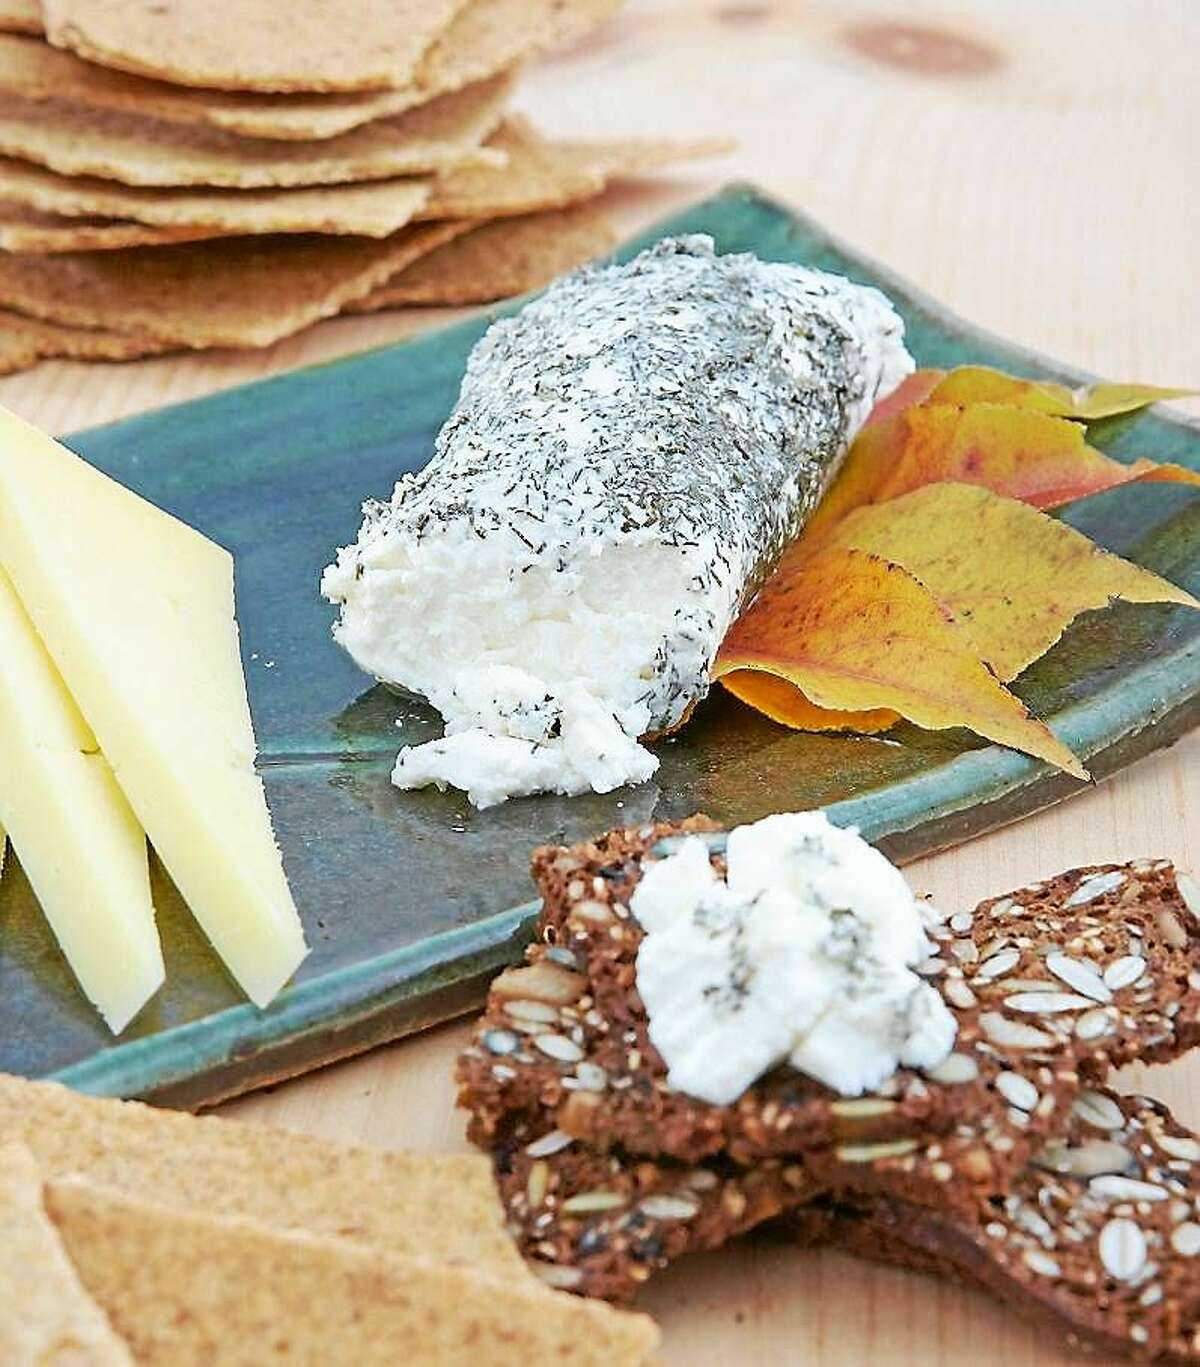 """Contributed photo Sister Noella Marcellino, """"The Cheese Nun,"""" will also make an appearance at the festival, and participate in a question and answer session in the education tent. Above, cheese samples await guests in the tent."""